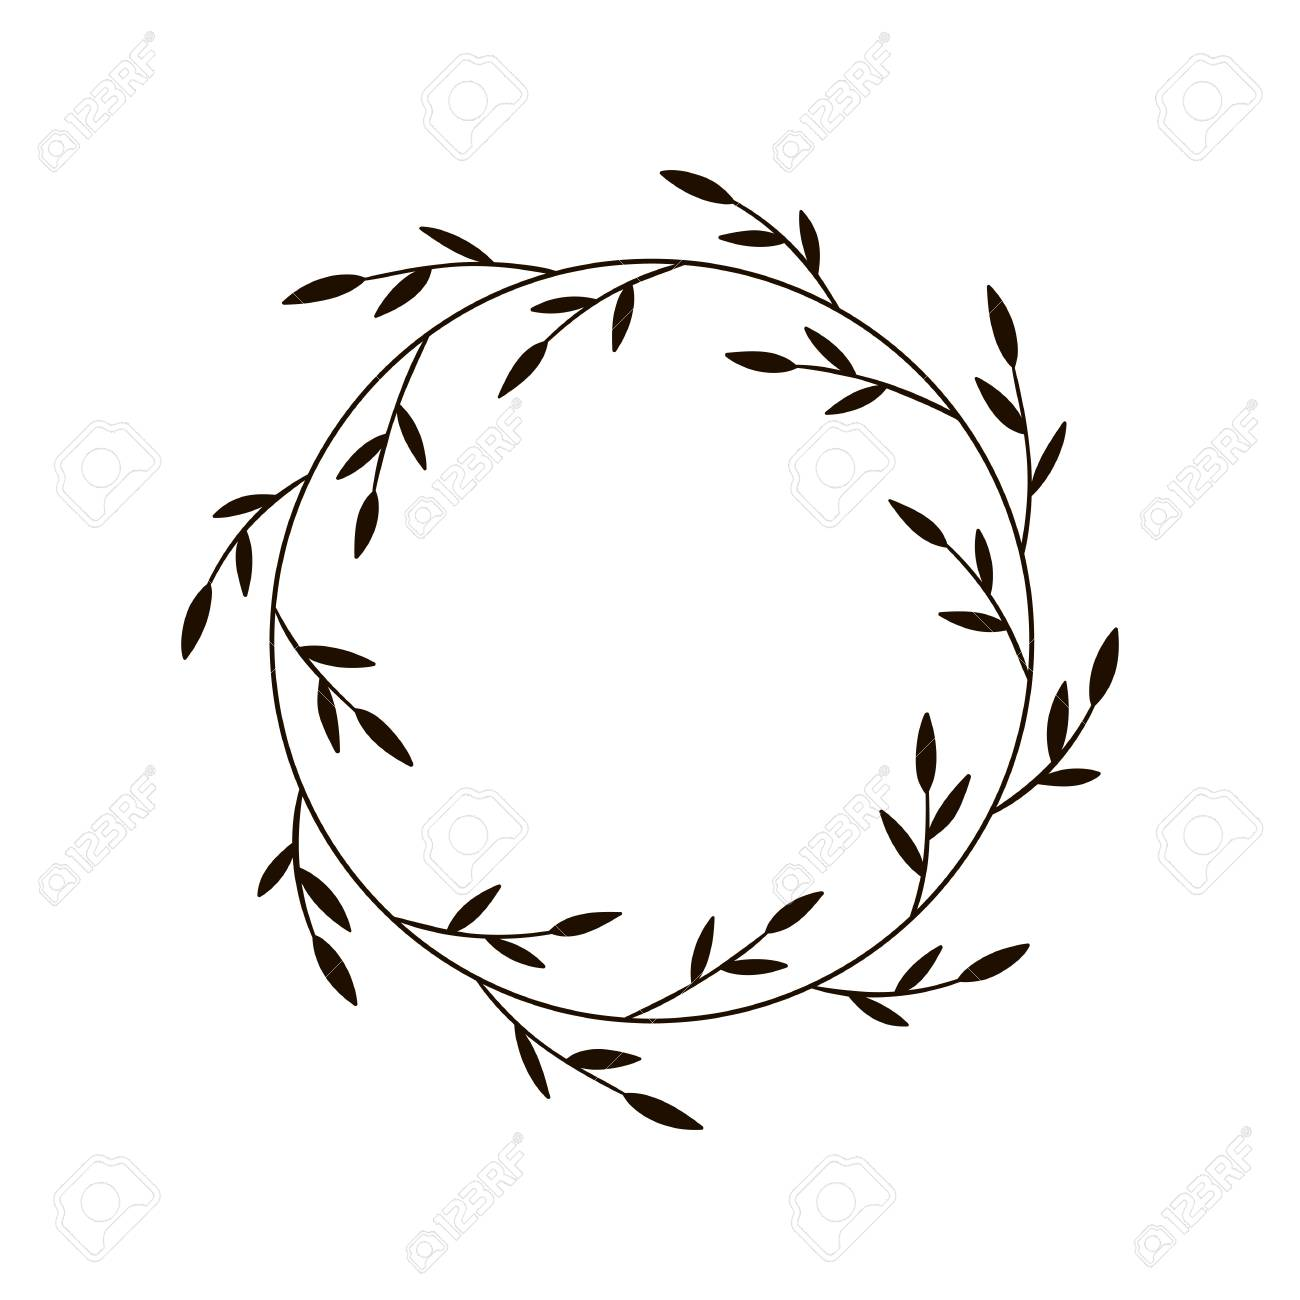 Christmas Joy Wreath Hand Drawn Vector Round Frame For Invitations Royalty Free Cliparts Vectors And Stock Illustration Image 127435381